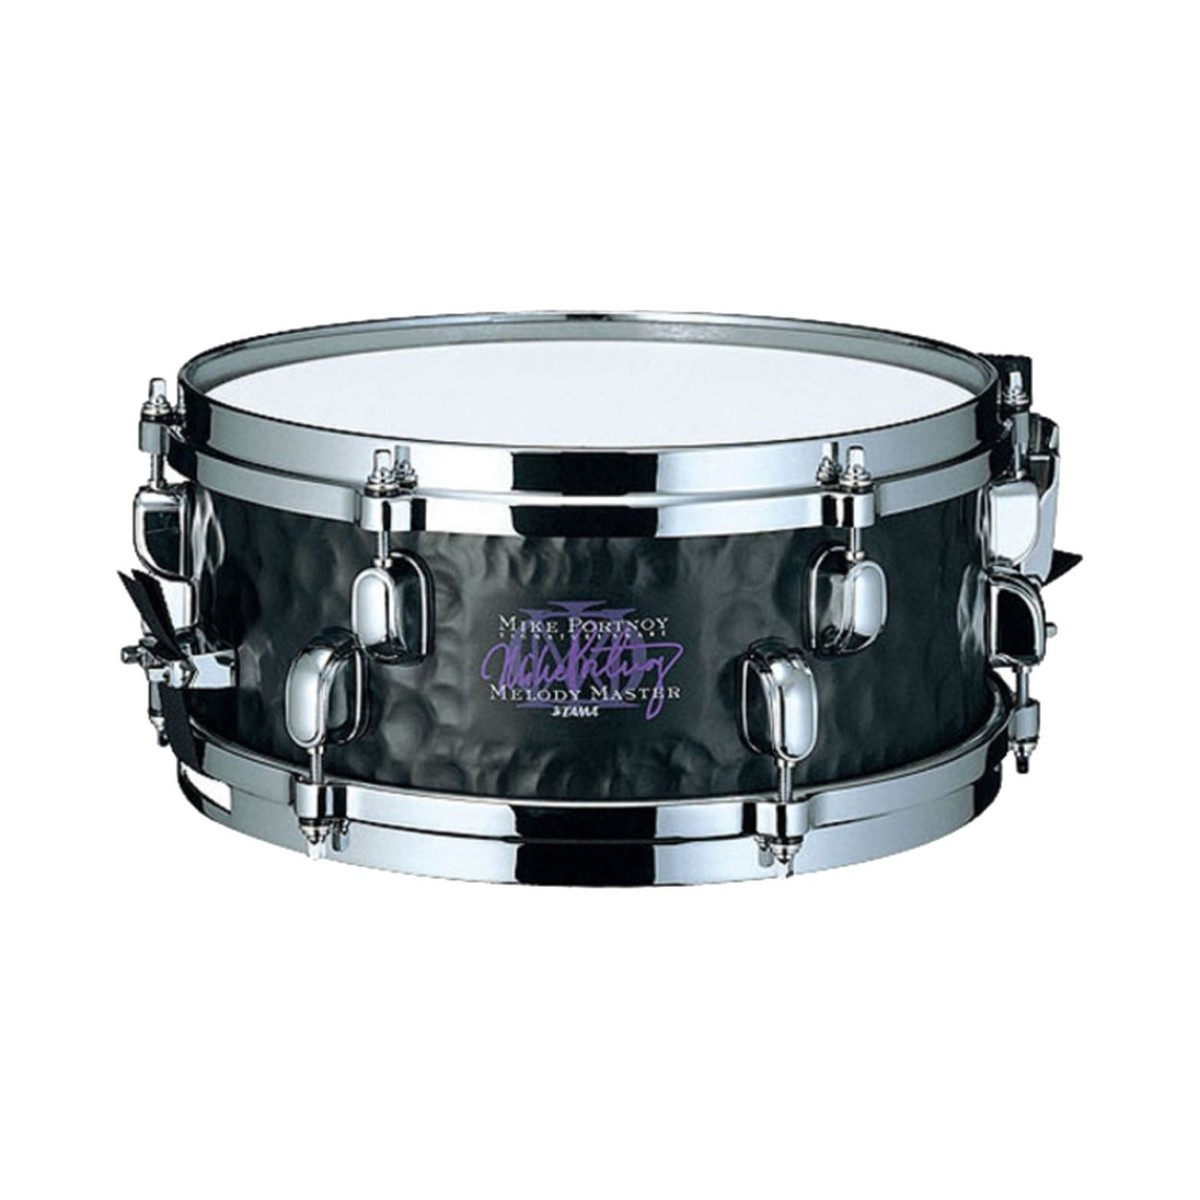 tama mike portnoy signature 12 39 39 x 5 39 39 snare drum at. Black Bedroom Furniture Sets. Home Design Ideas